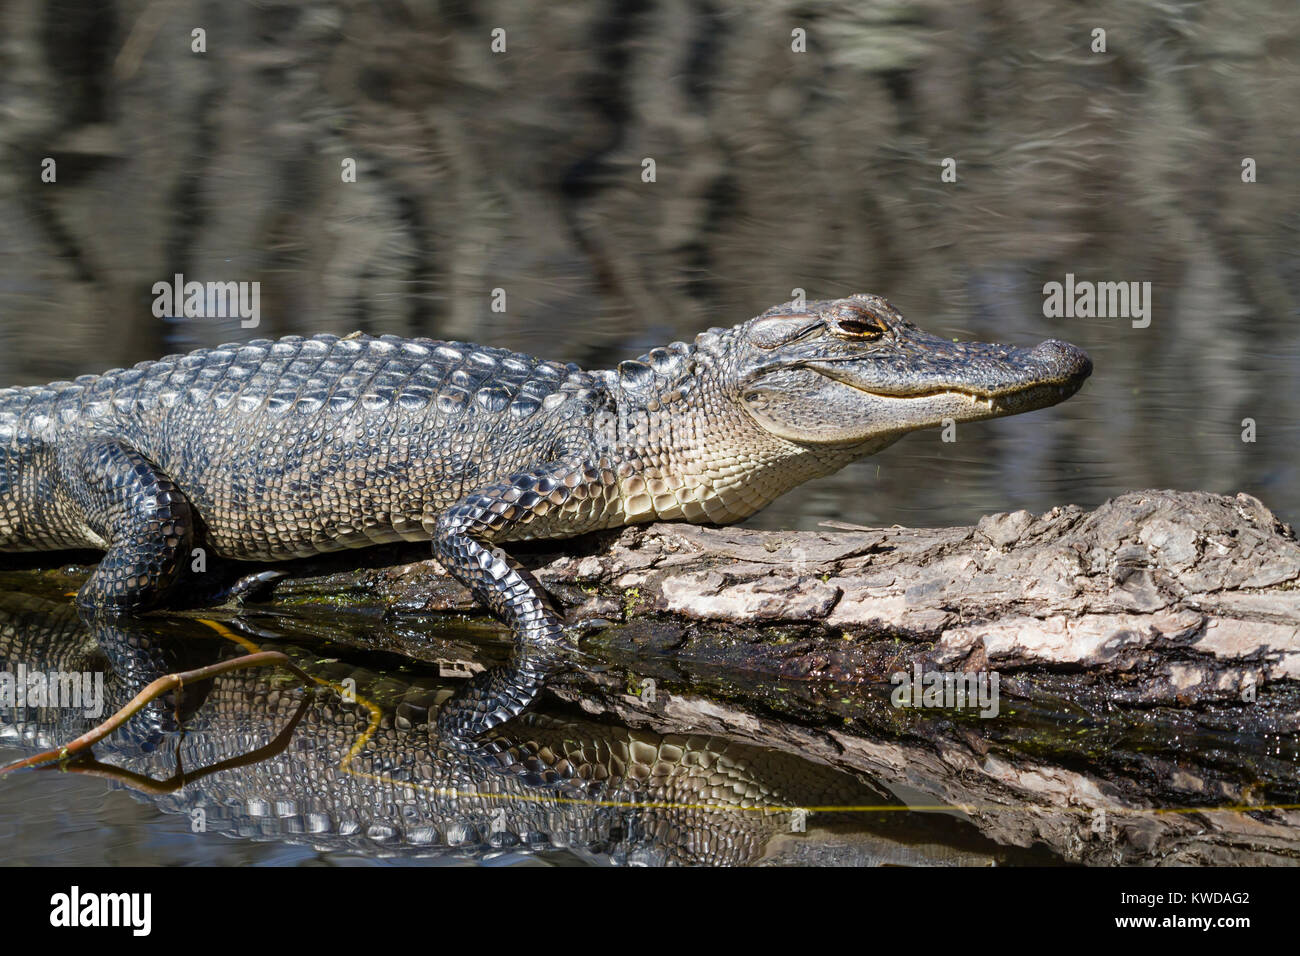 Young alligator taking of sun bath Stock Photo